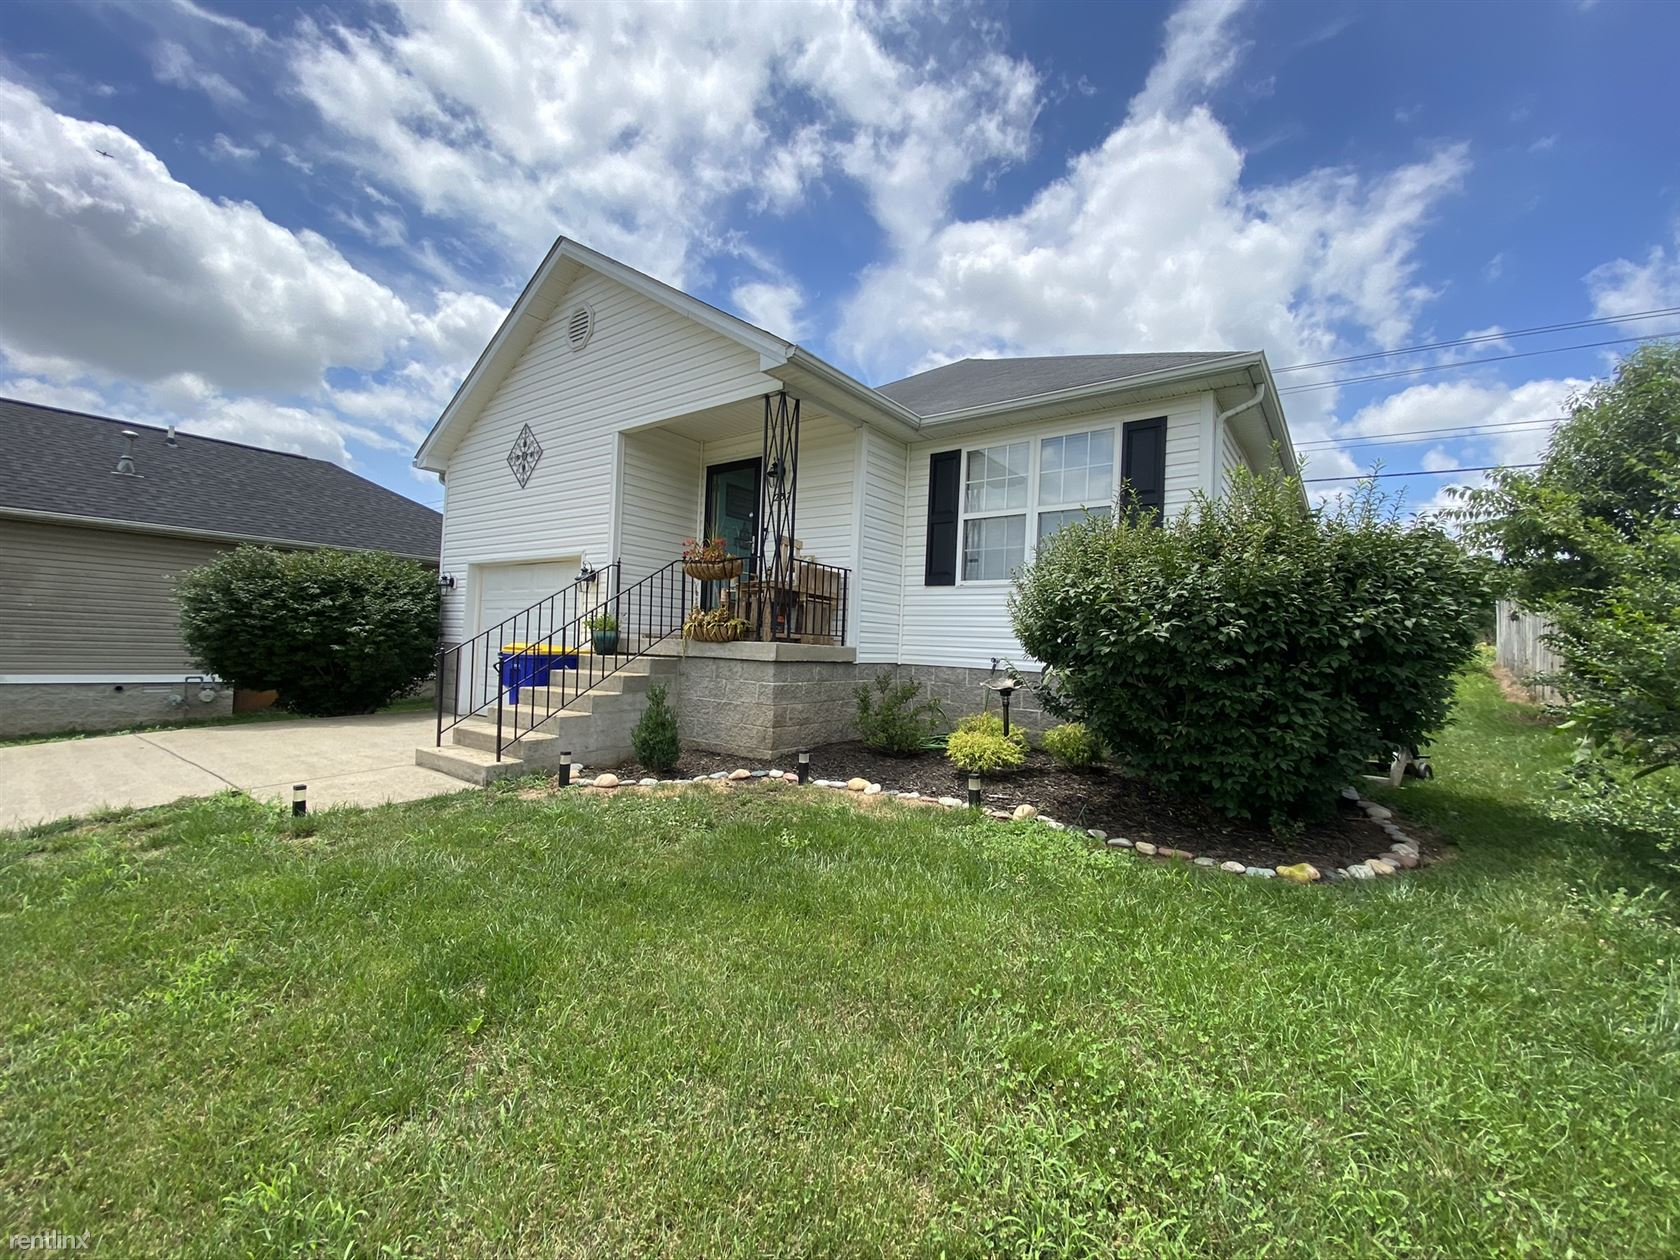 237 Kendale St, Bowling Green, KY - $1,050